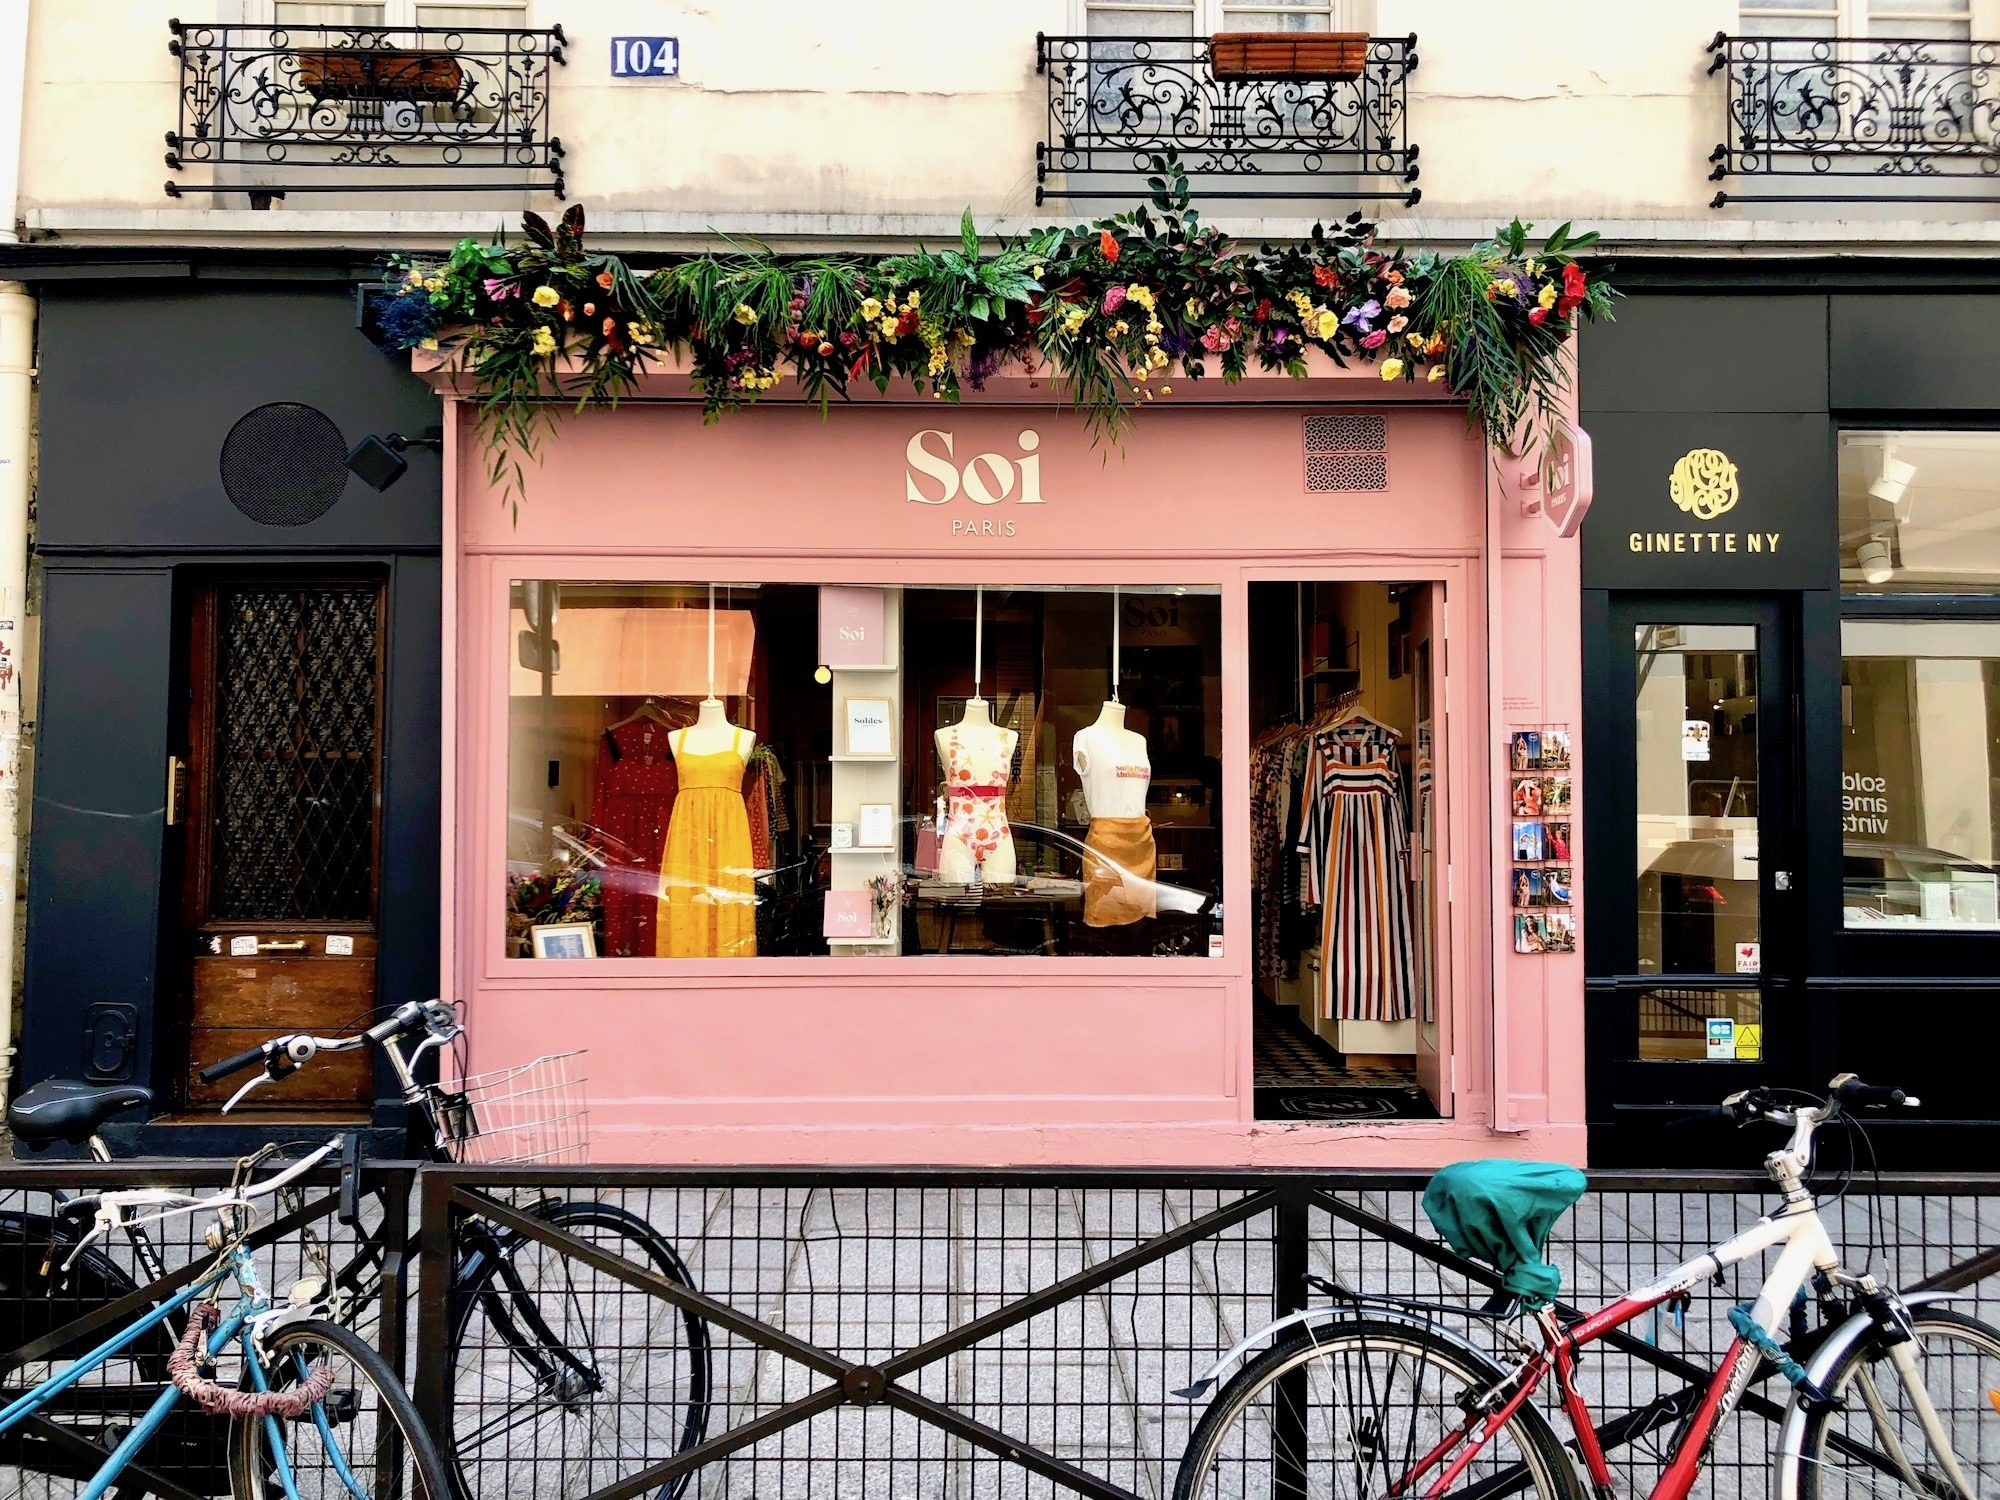 The pink store front of French fashion brand we love, Soi, in Paris.